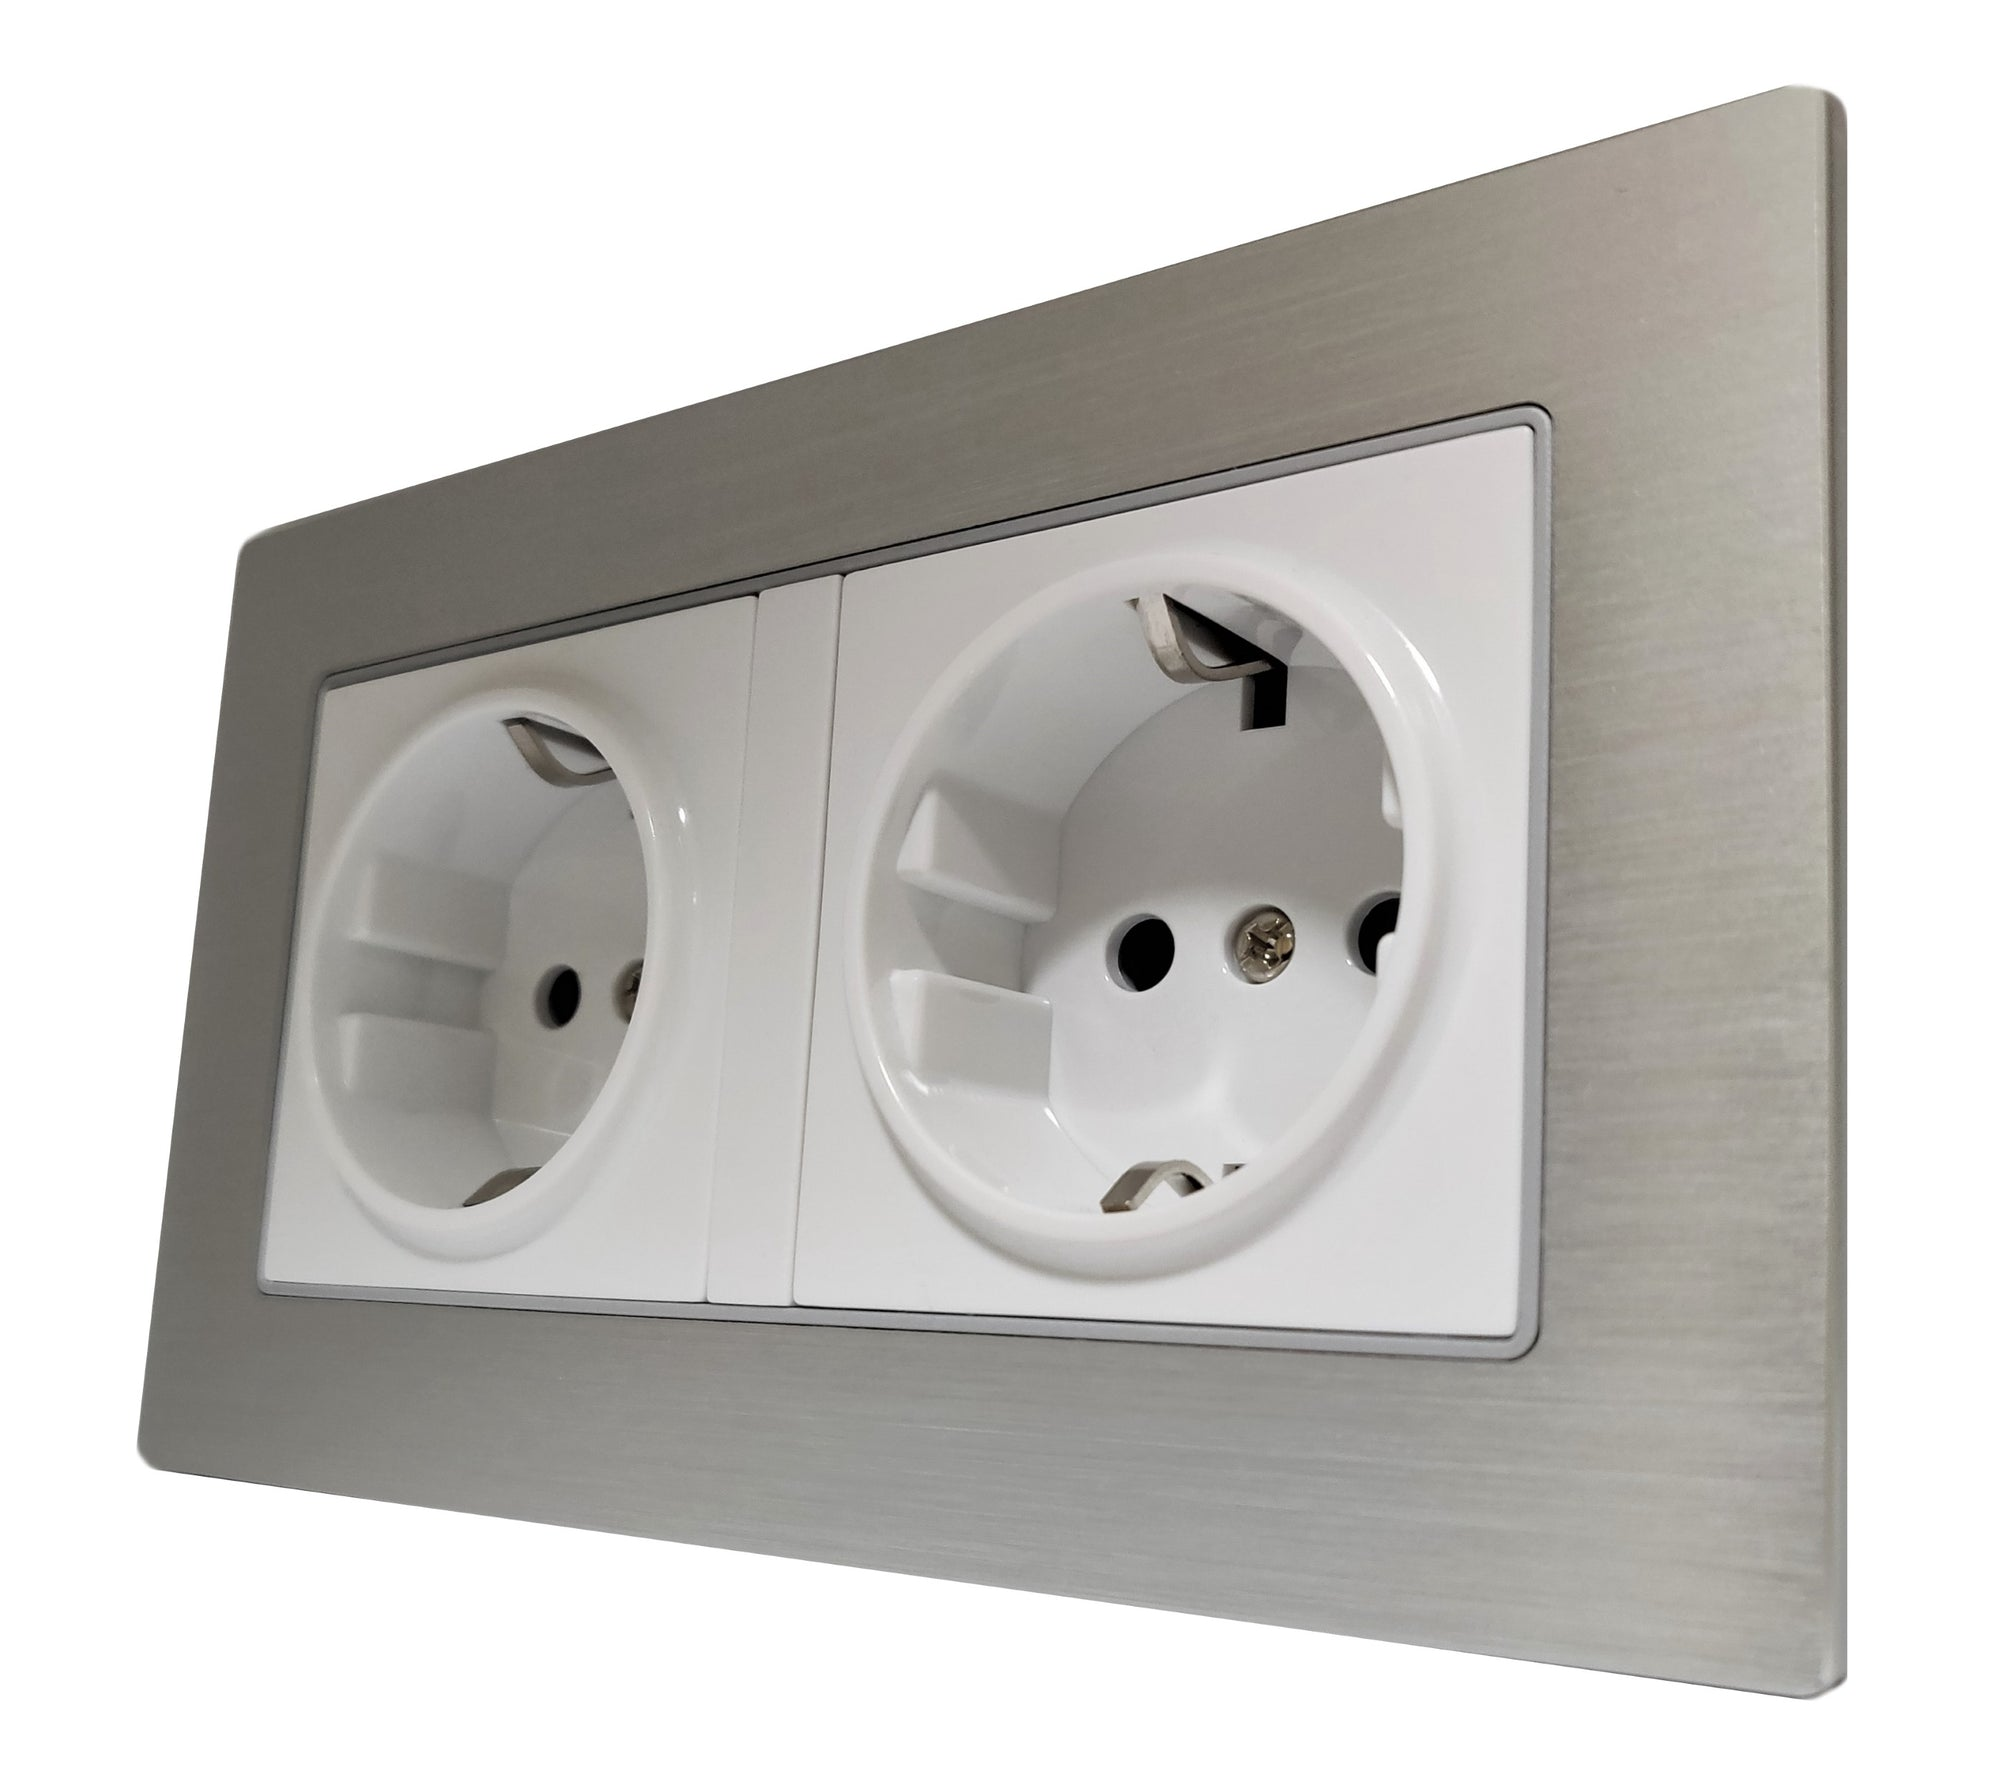 Double Schuko EU 16A 2-Pin AC Wall Power Socket in Silver Brushed Alum Frame & White Centre